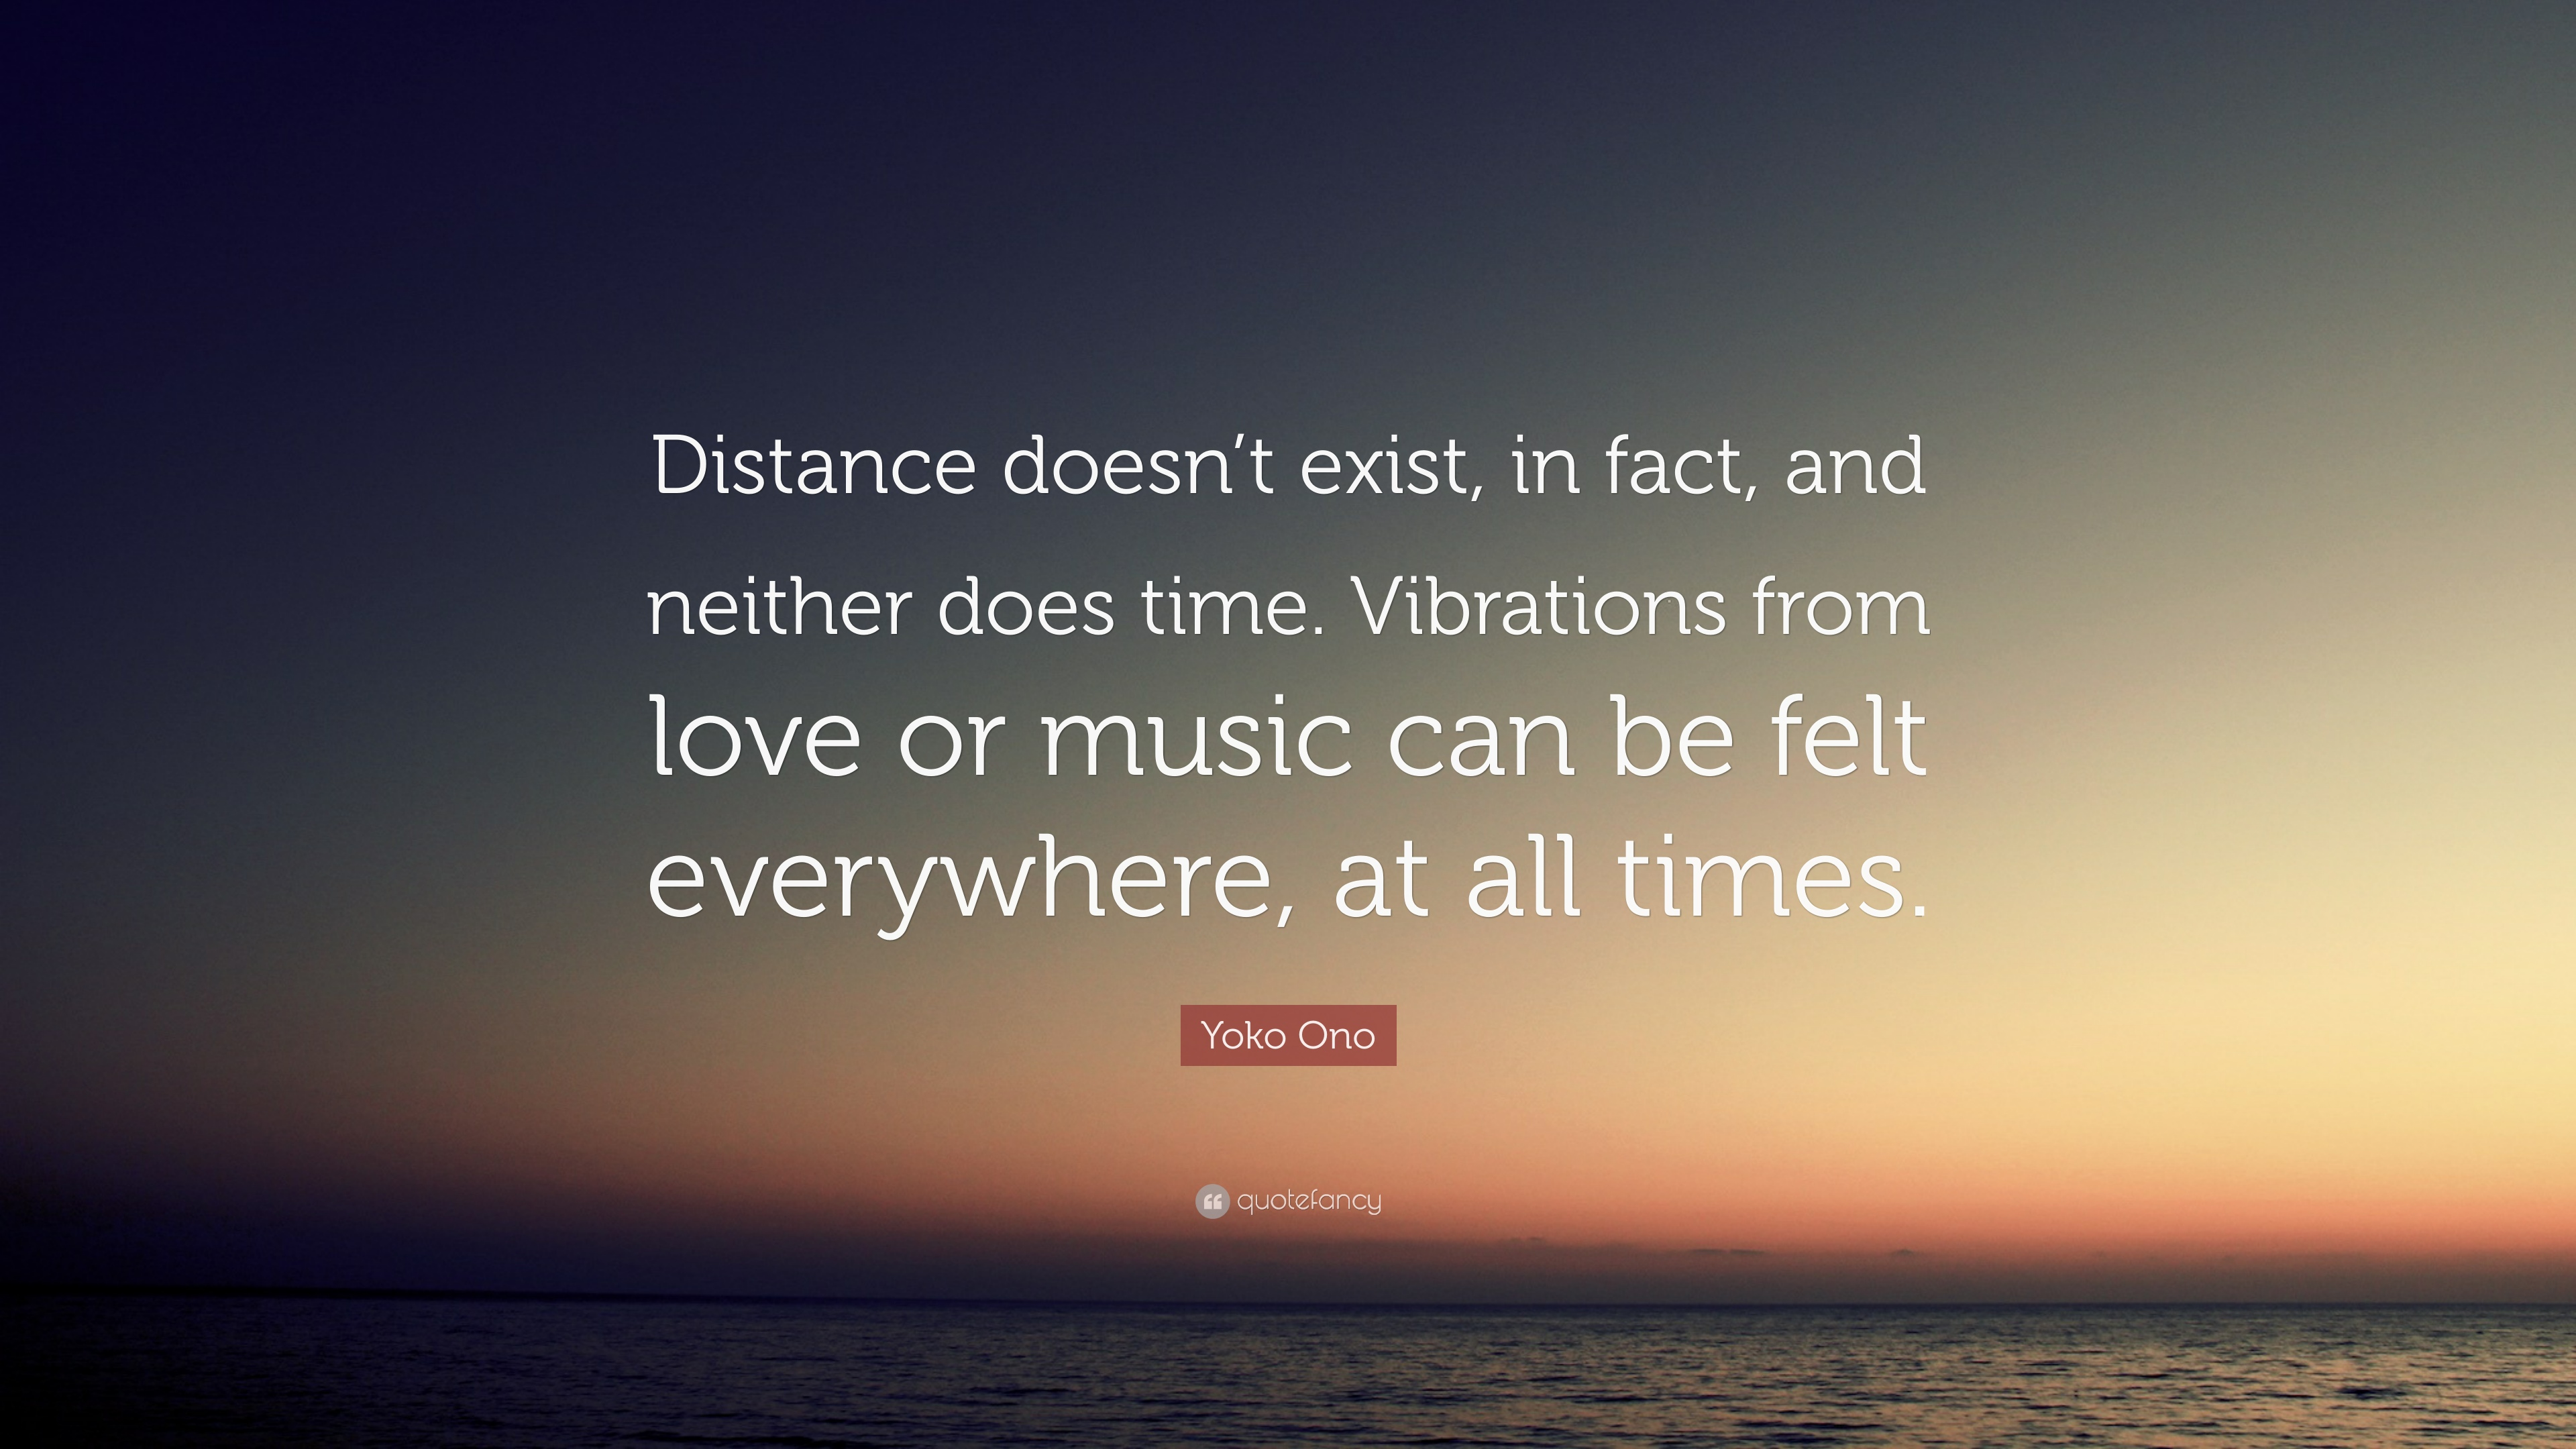 Yoko Ono Quote Distance Doesnt Exist In Fact And Neither Does